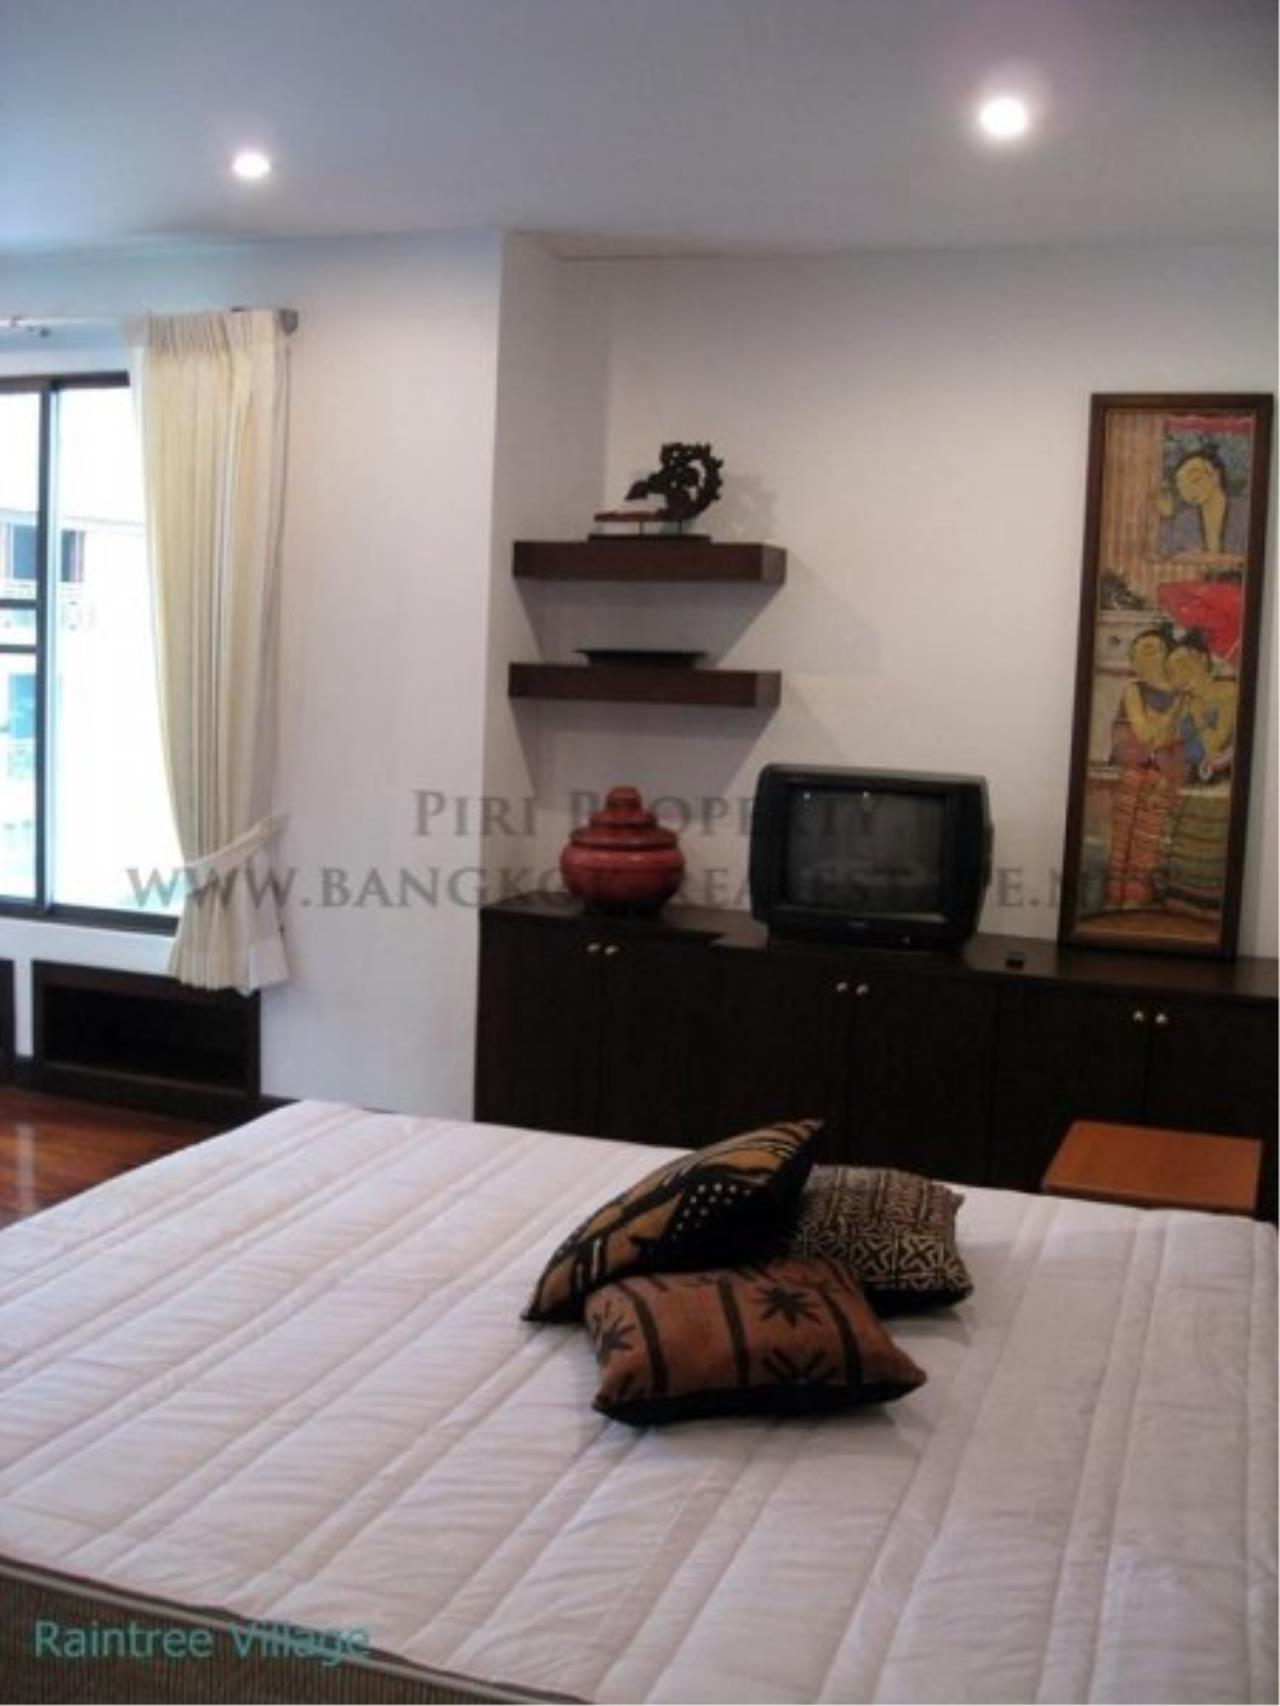 Piri Property Agency's Spacious Family Apartment in Phrom Phong for Rent - 3 Bed 6